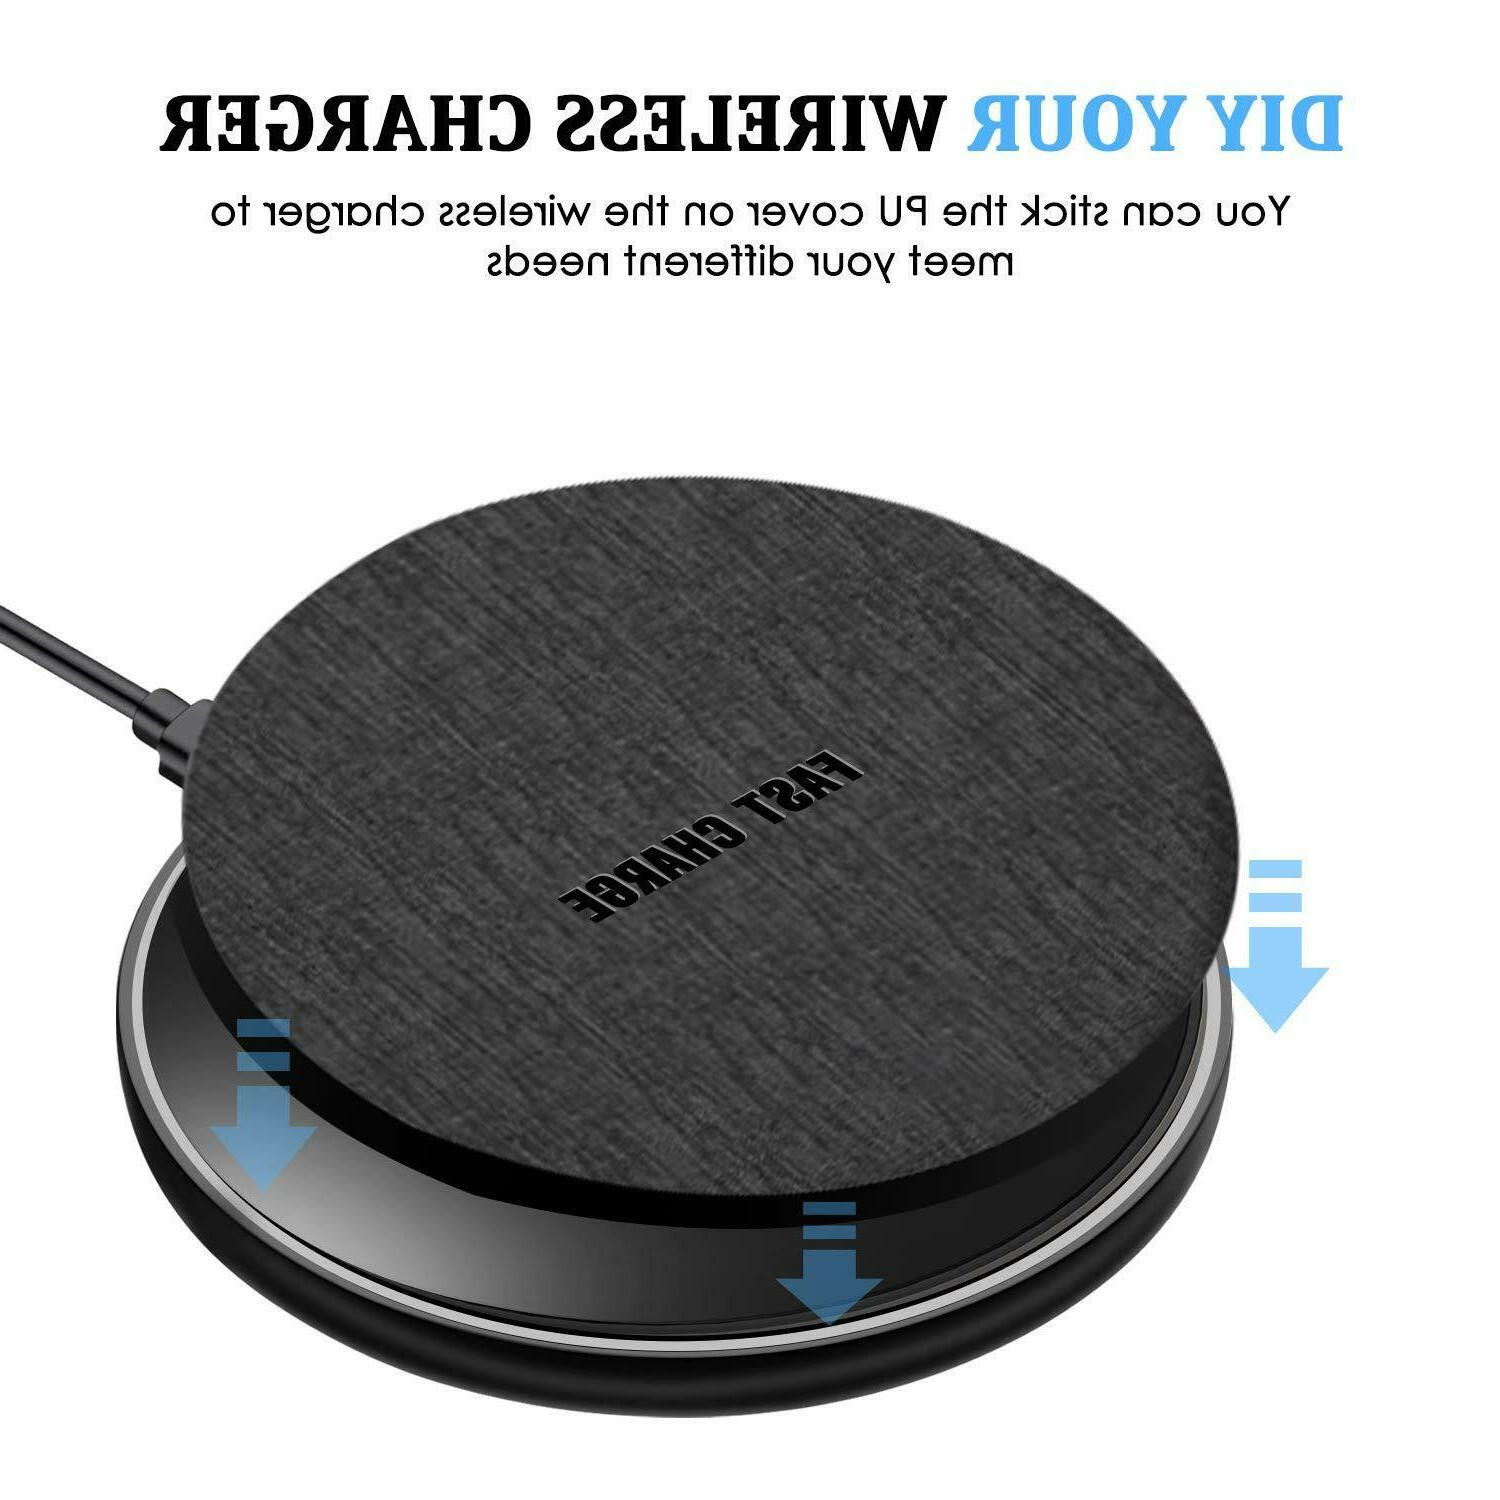 Qi Fast Charger Charging Pad Iphone Samsung Galaxy Note S8 S7